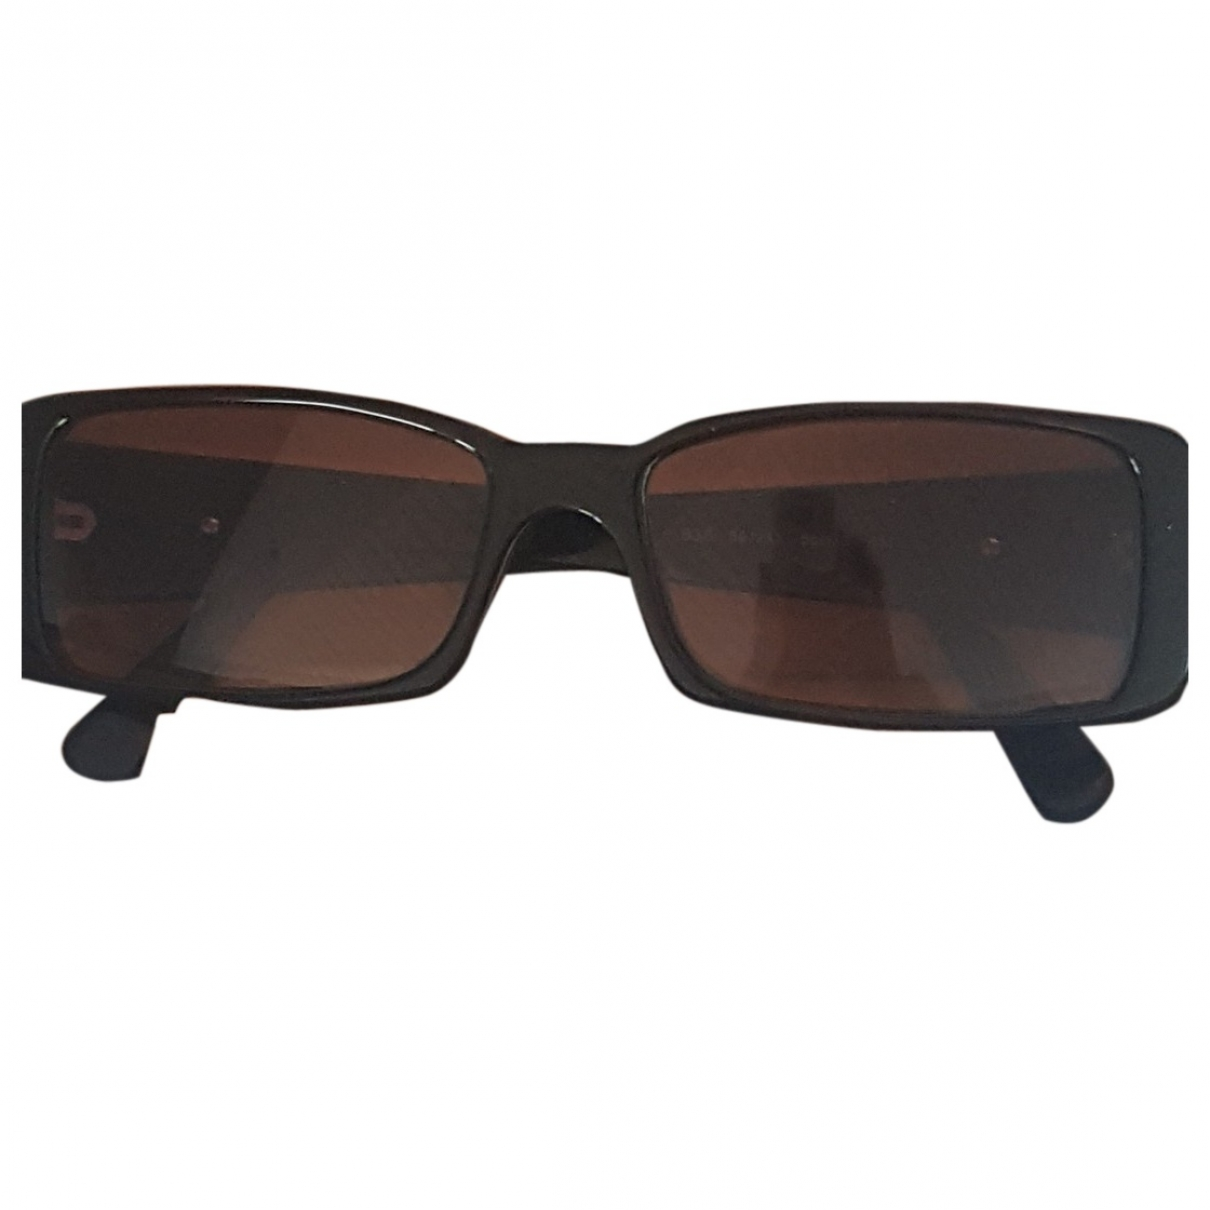 Bvlgari \N Black Sunglasses for Women \N